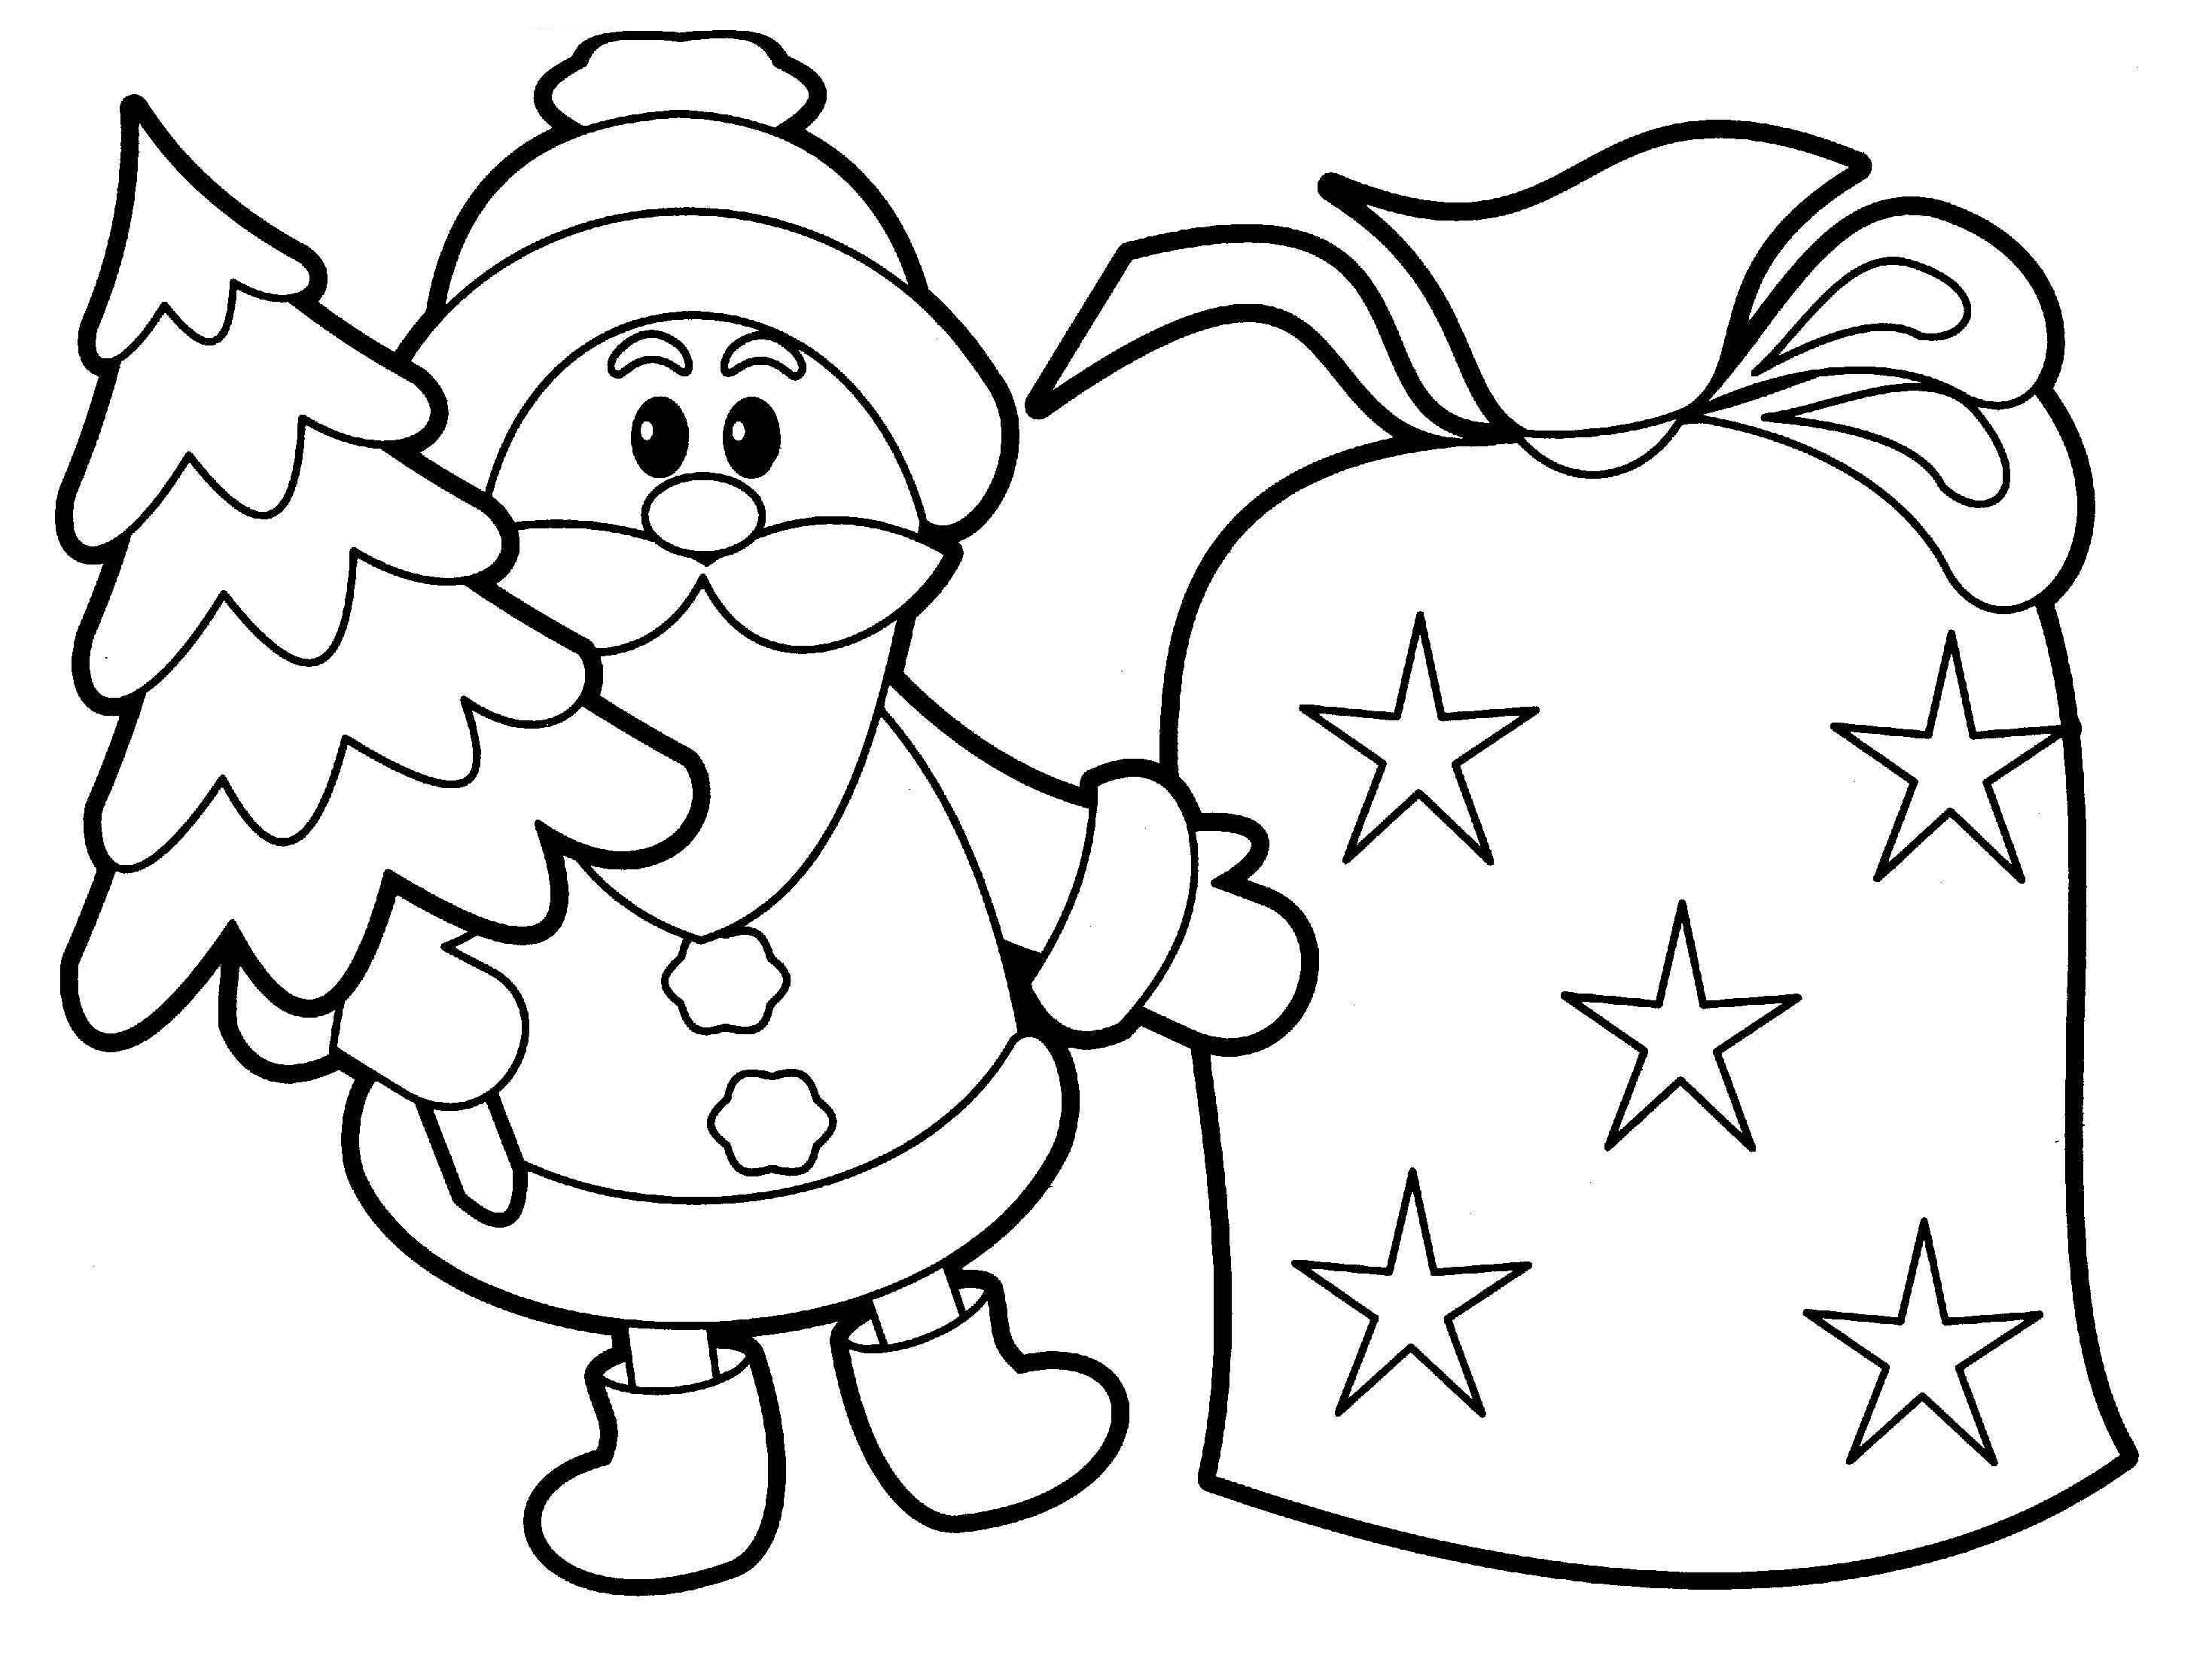 34 Preschool Coloring Pages Christmas Easy Pre K Christmas Coloring Download Of Back to School Coloring Pages for Kindergarten 1480—2168 Printable